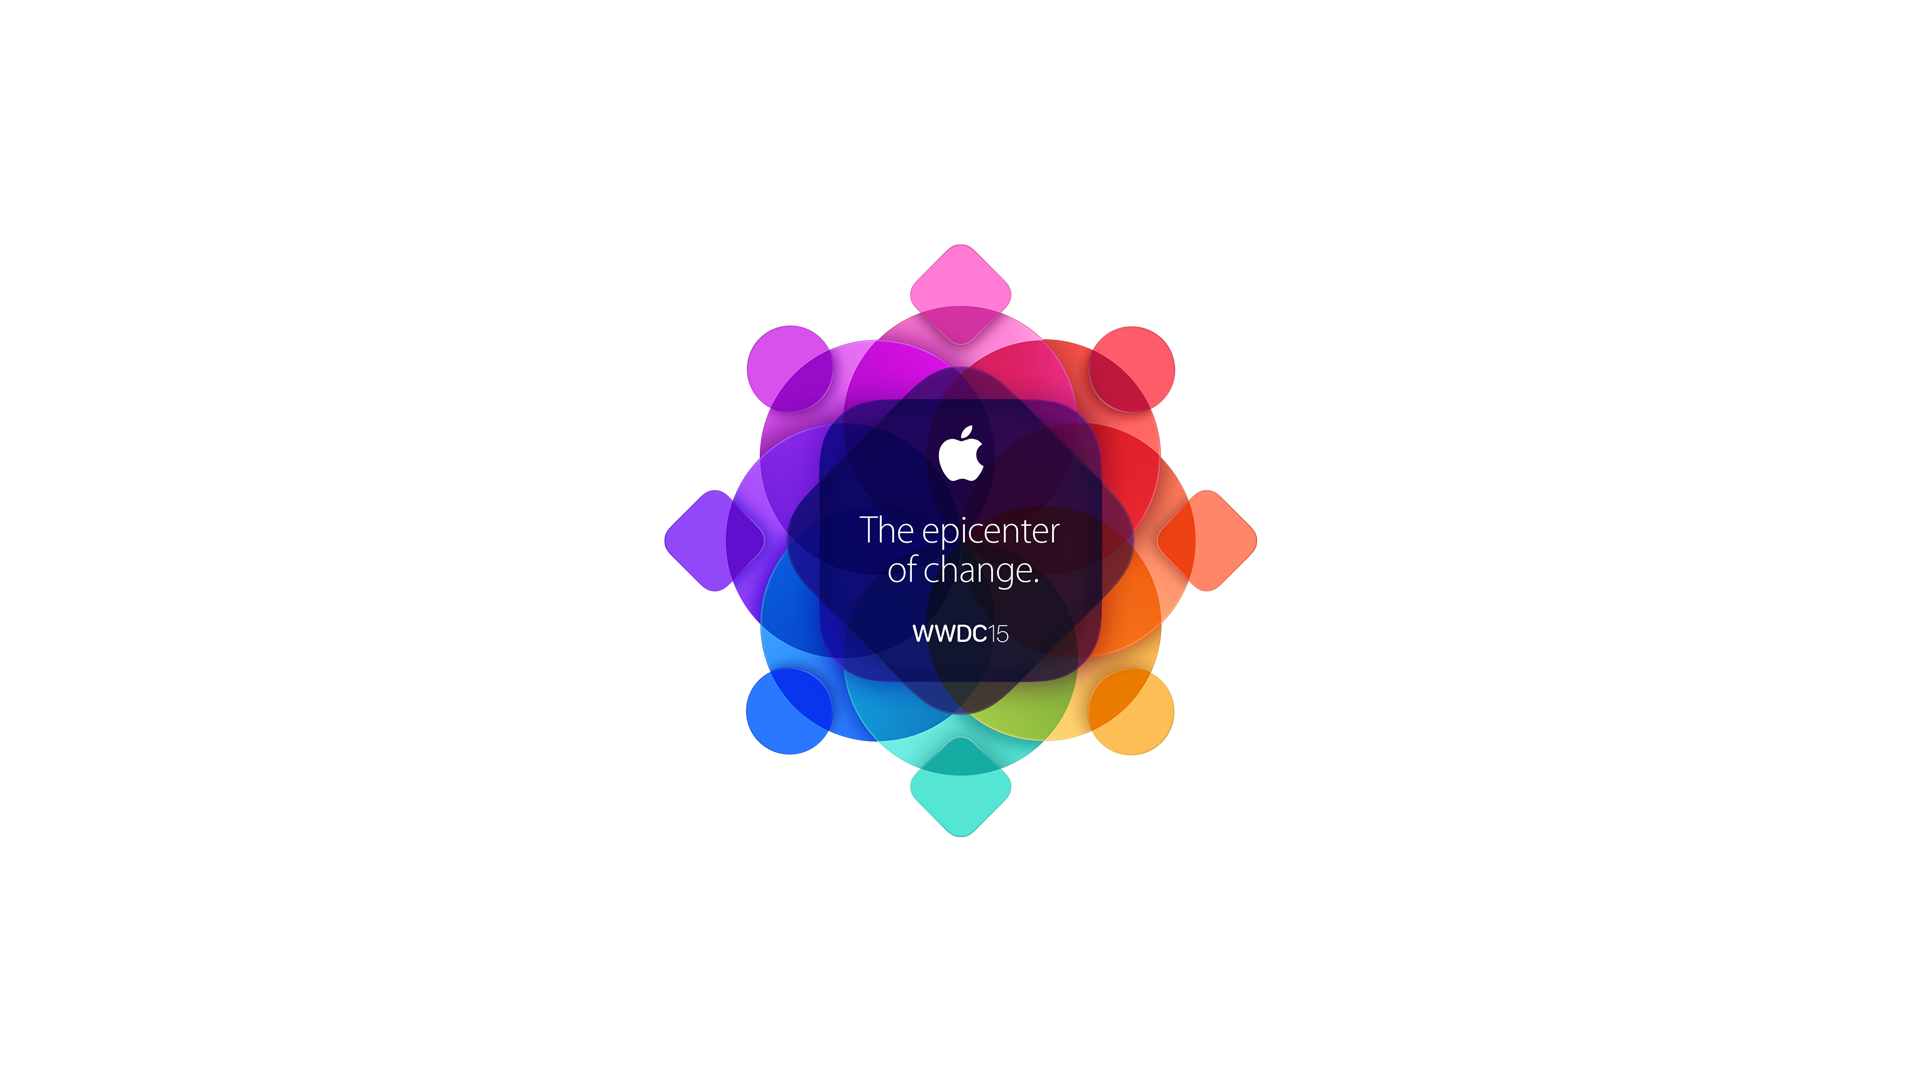 WWDC-2015-Wallpaper-for-Estandar-Resolution-1920-x-1080